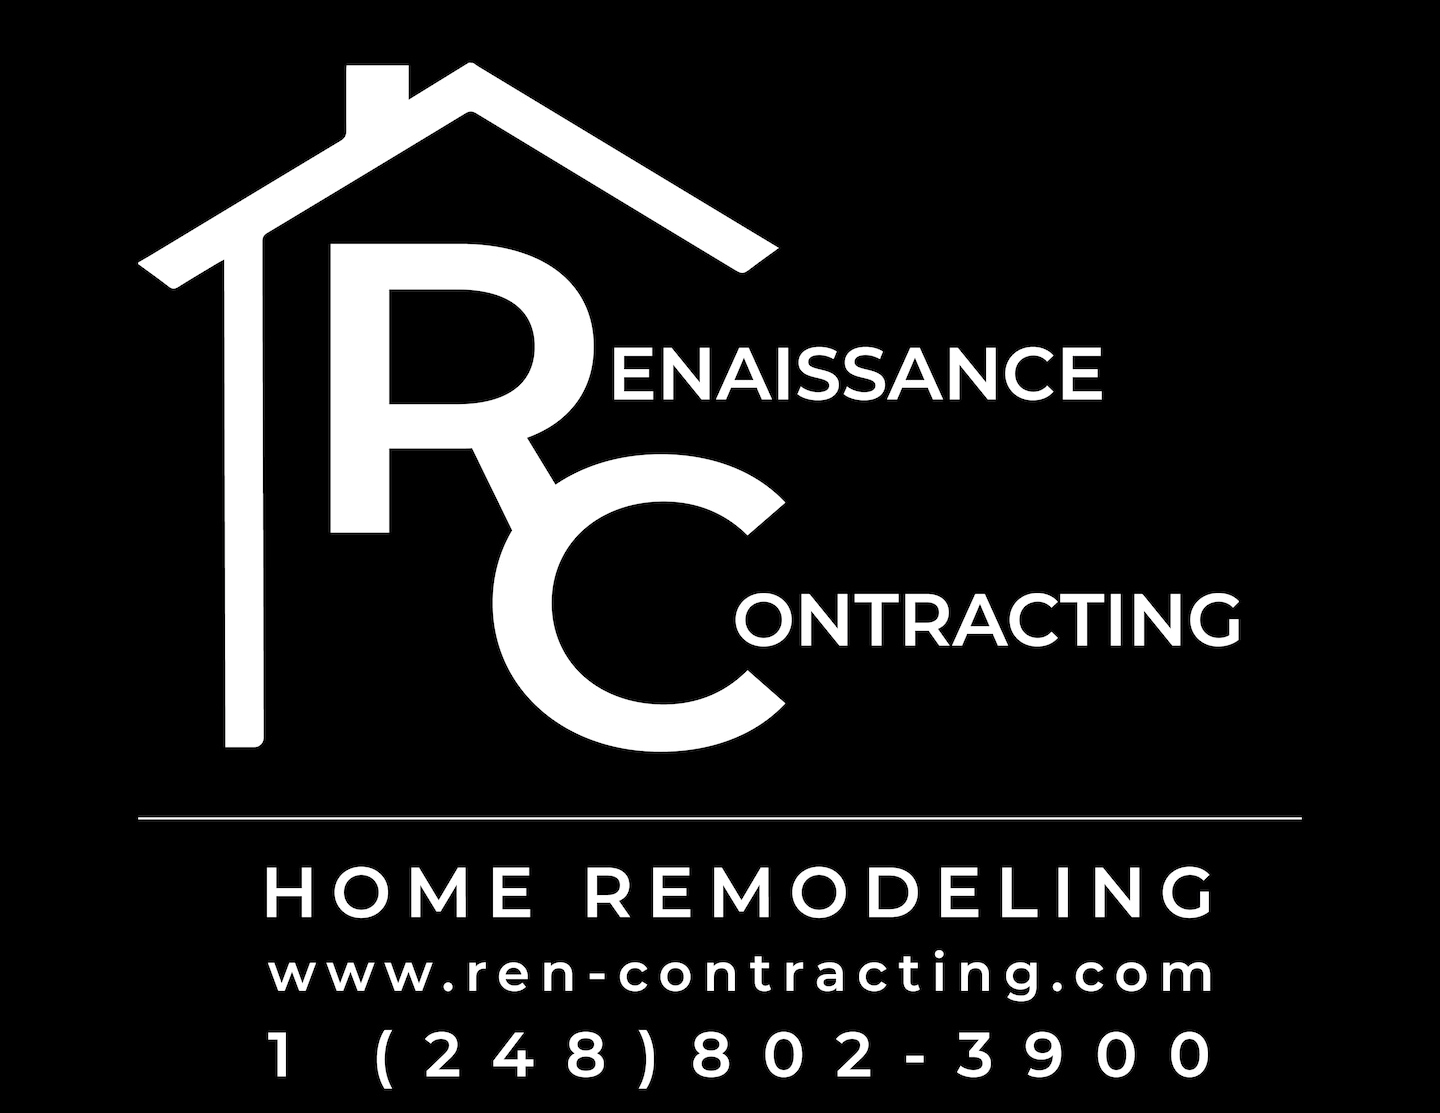 Renaissance Contracting logo